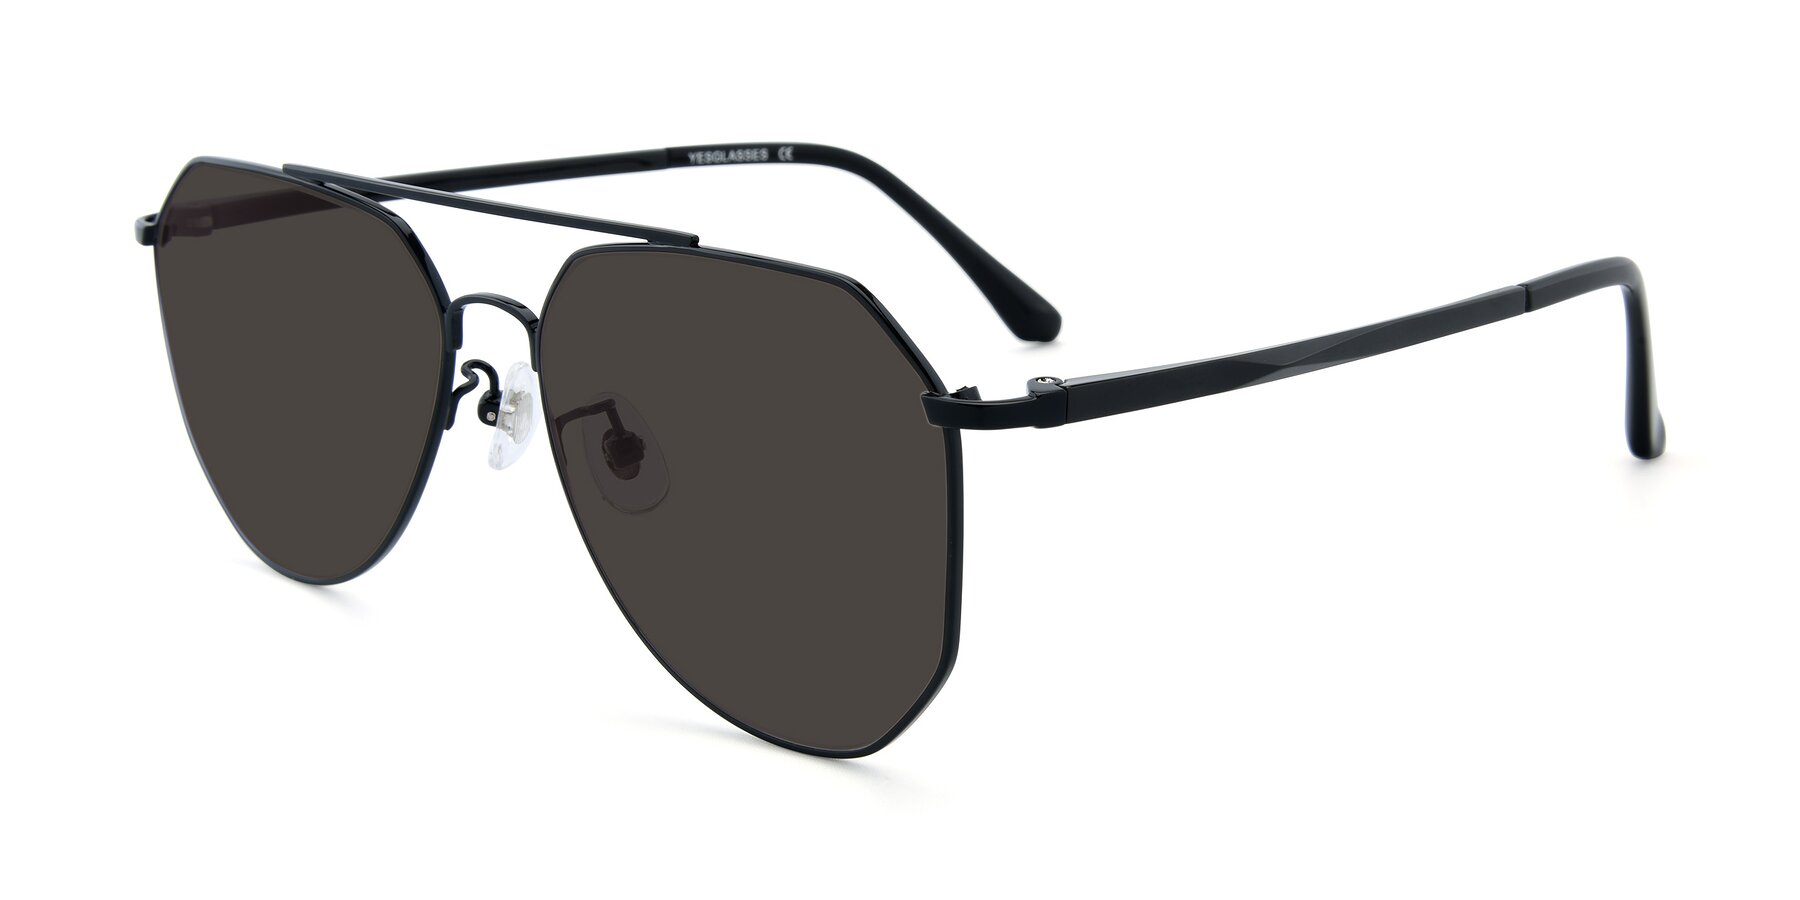 Angle of XC-8040 in Black with Gray Tinted Lenses